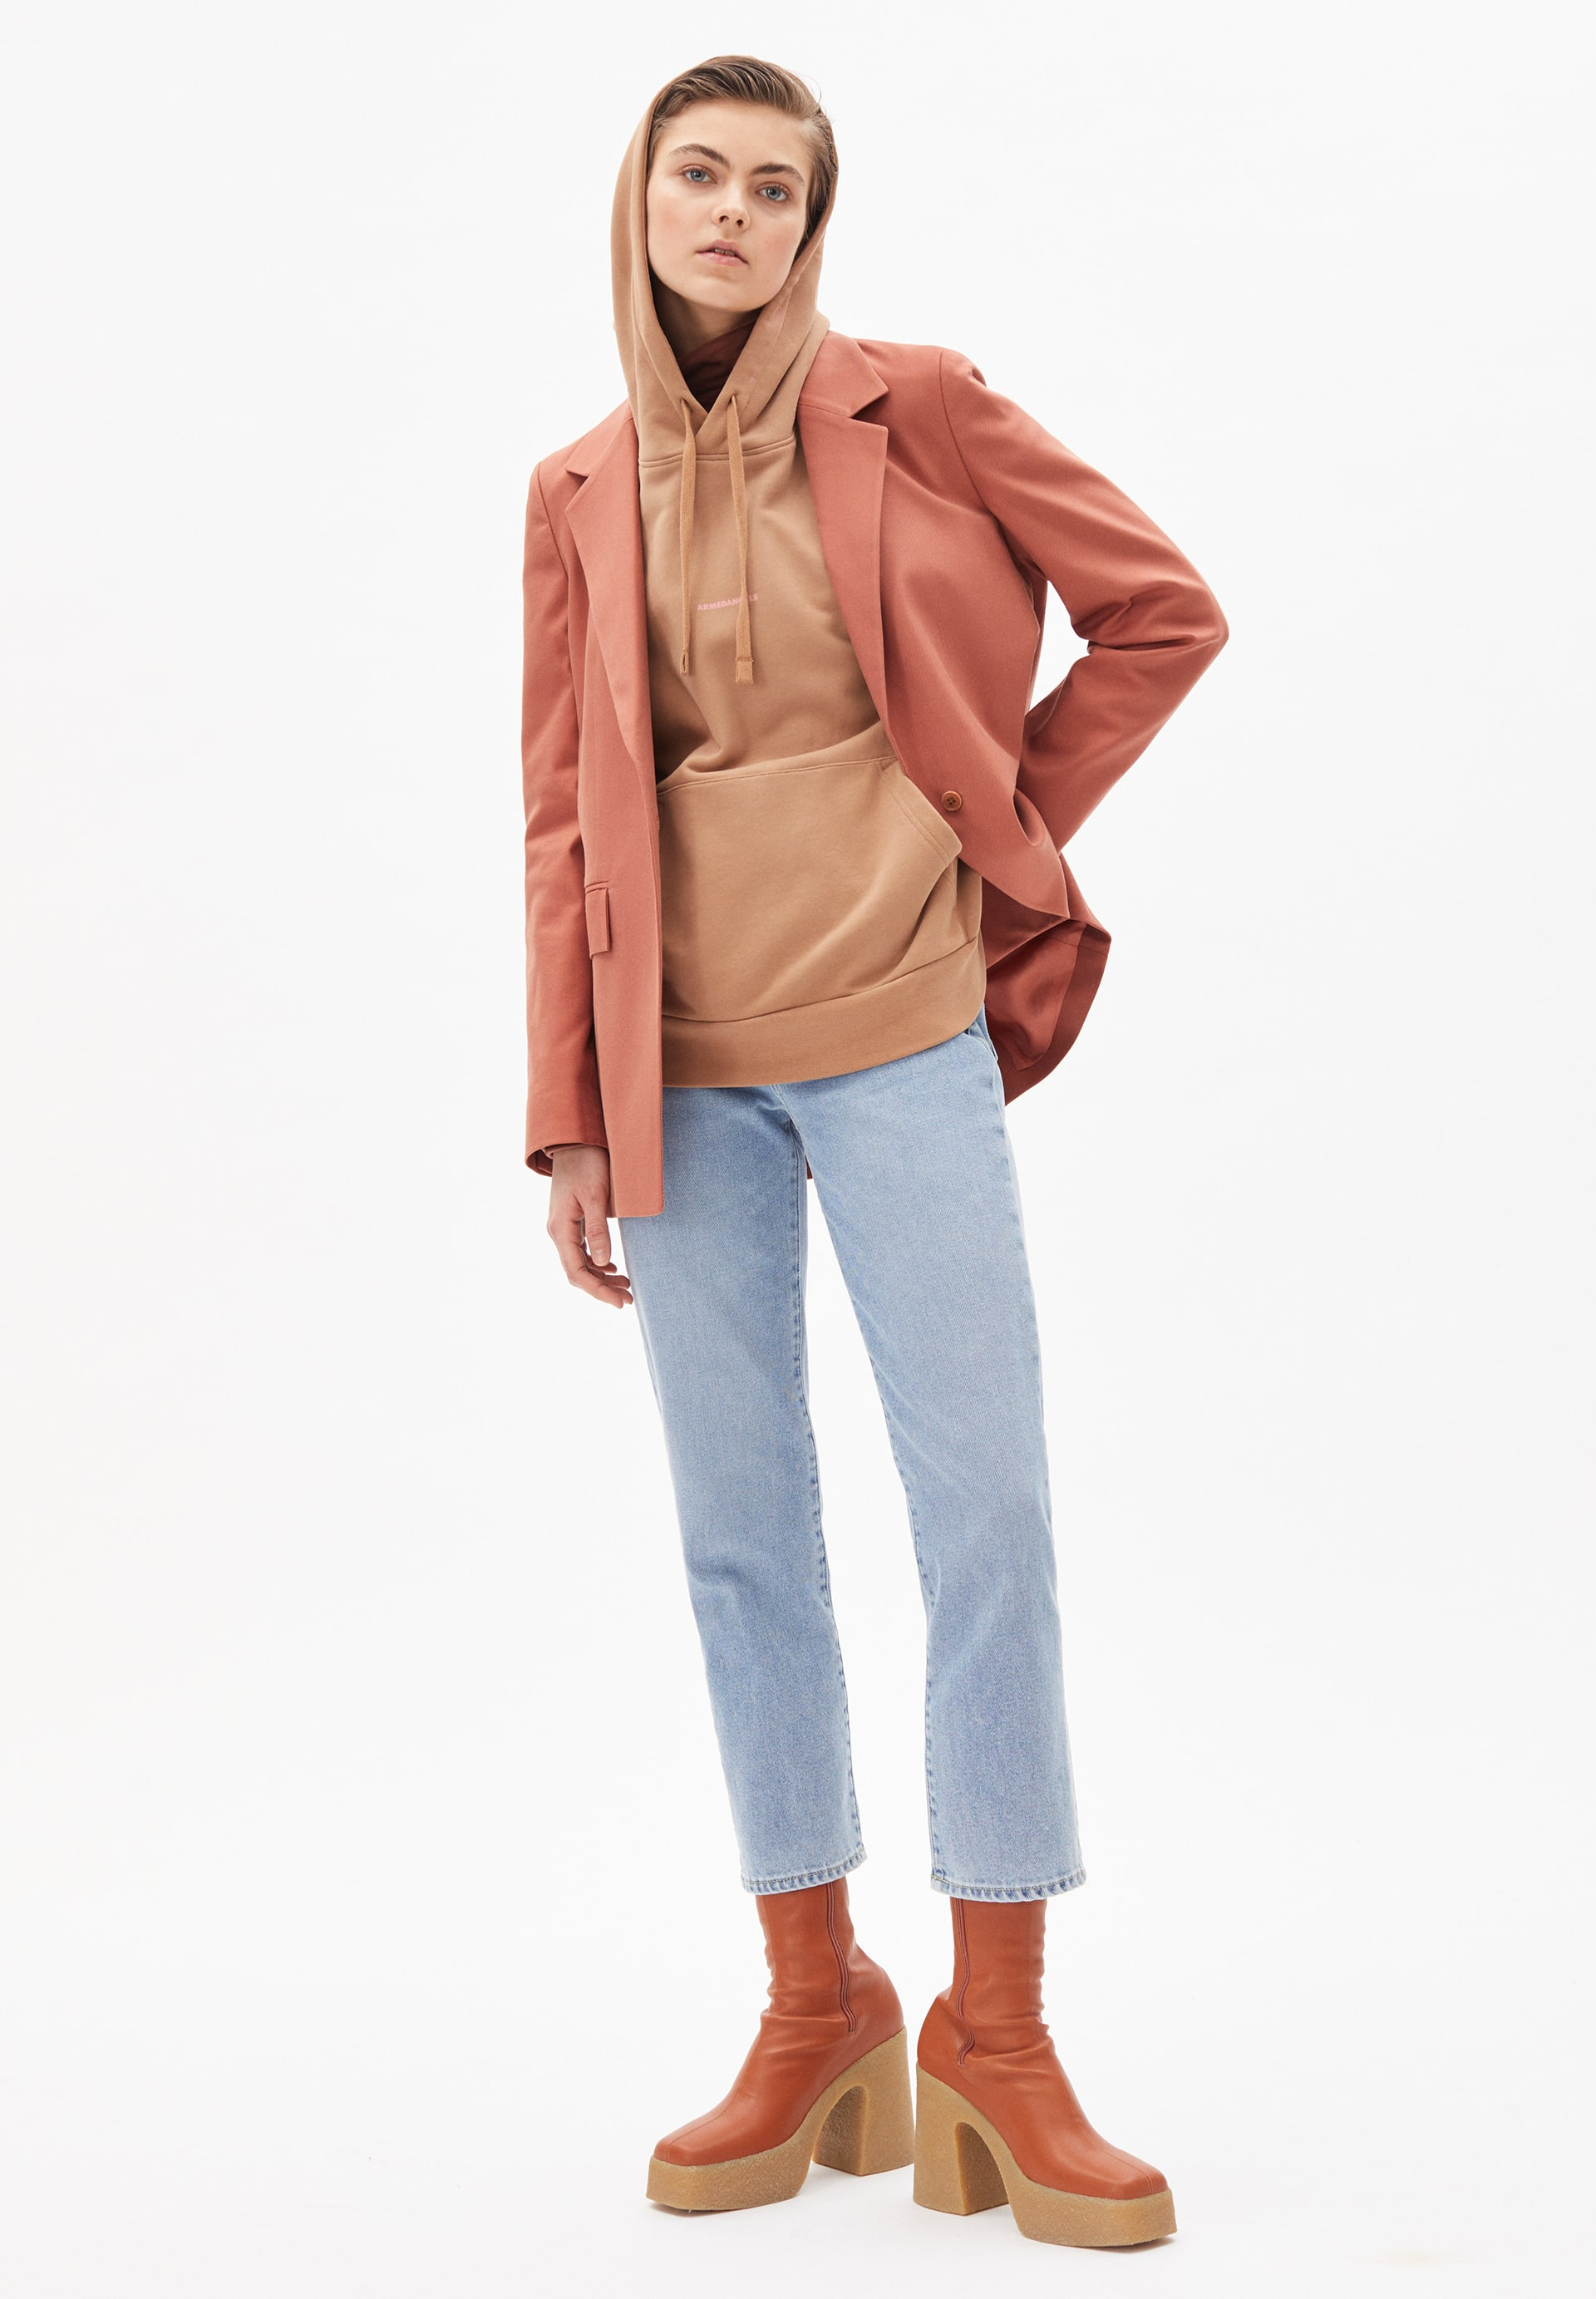 ANDREAA SOLID Blazer made of Organic Cotton Mix